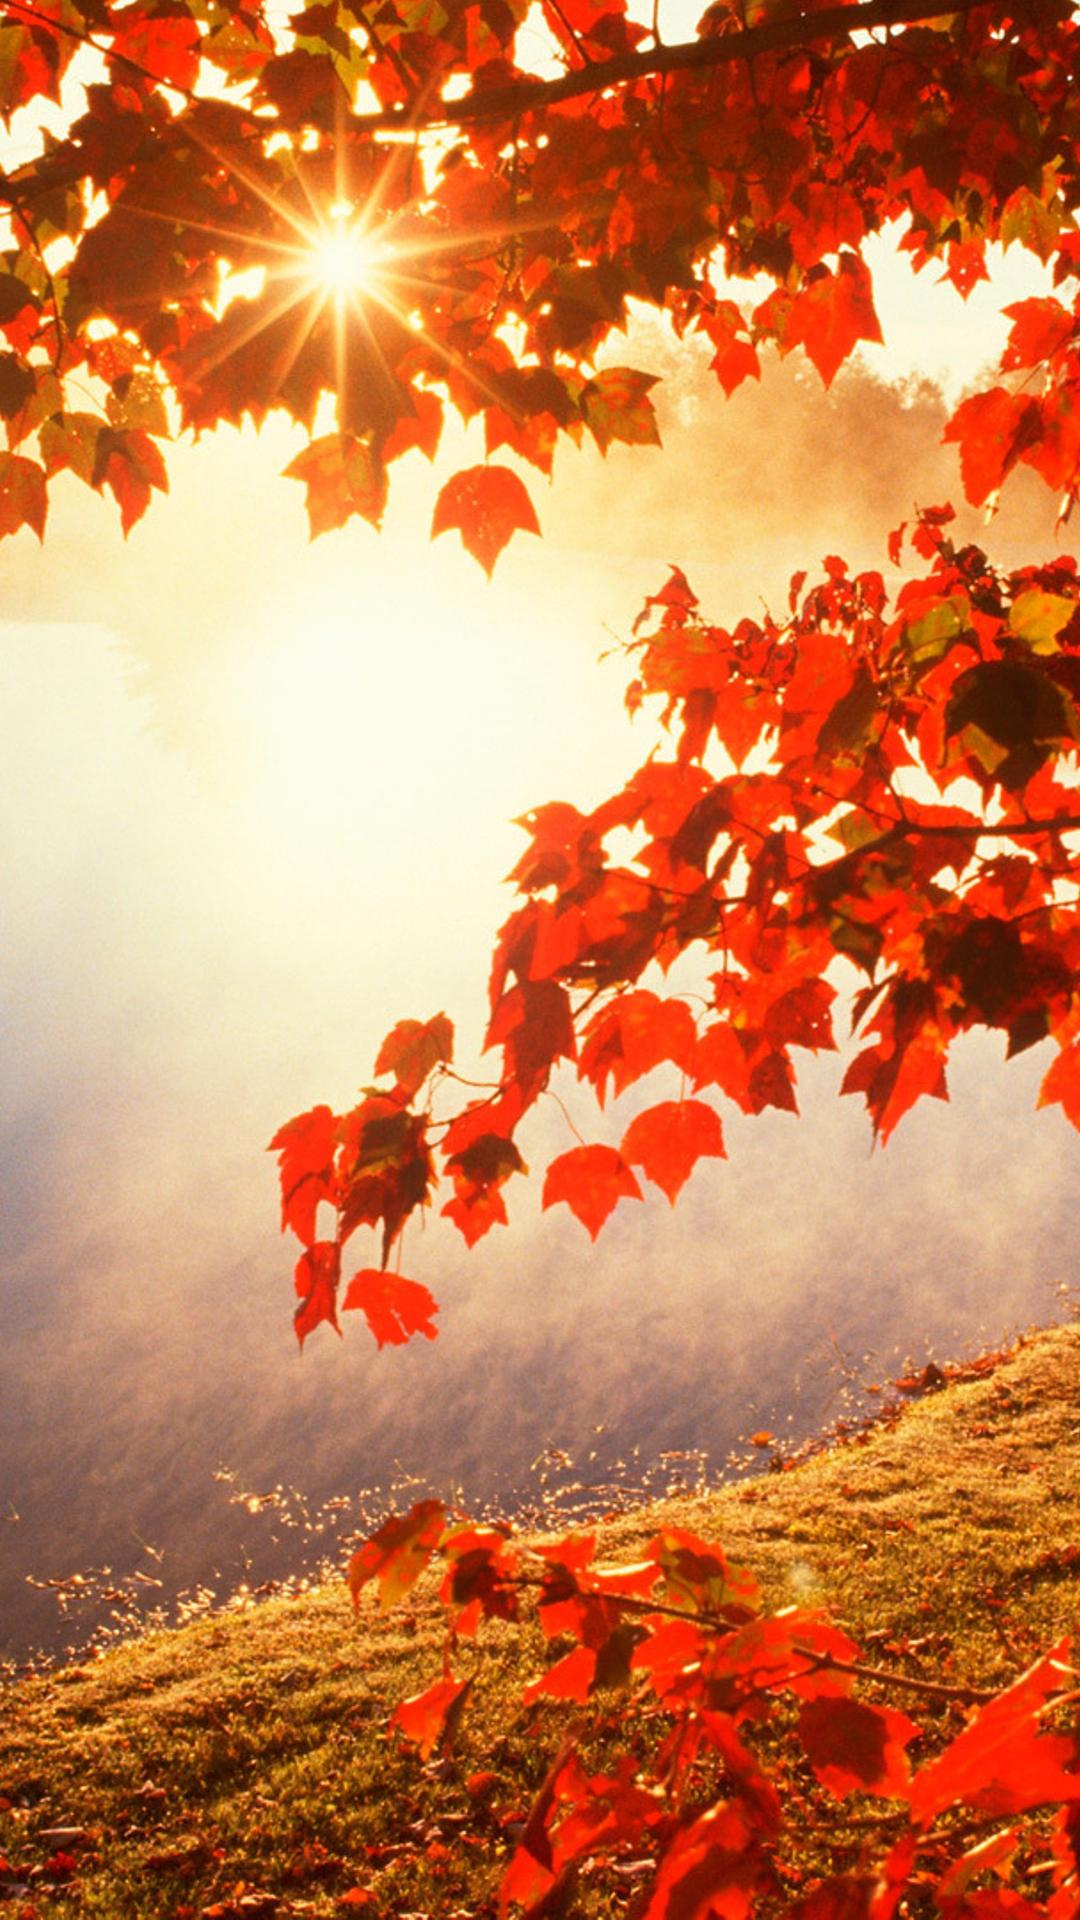 Good Morning Autumn Sunlight